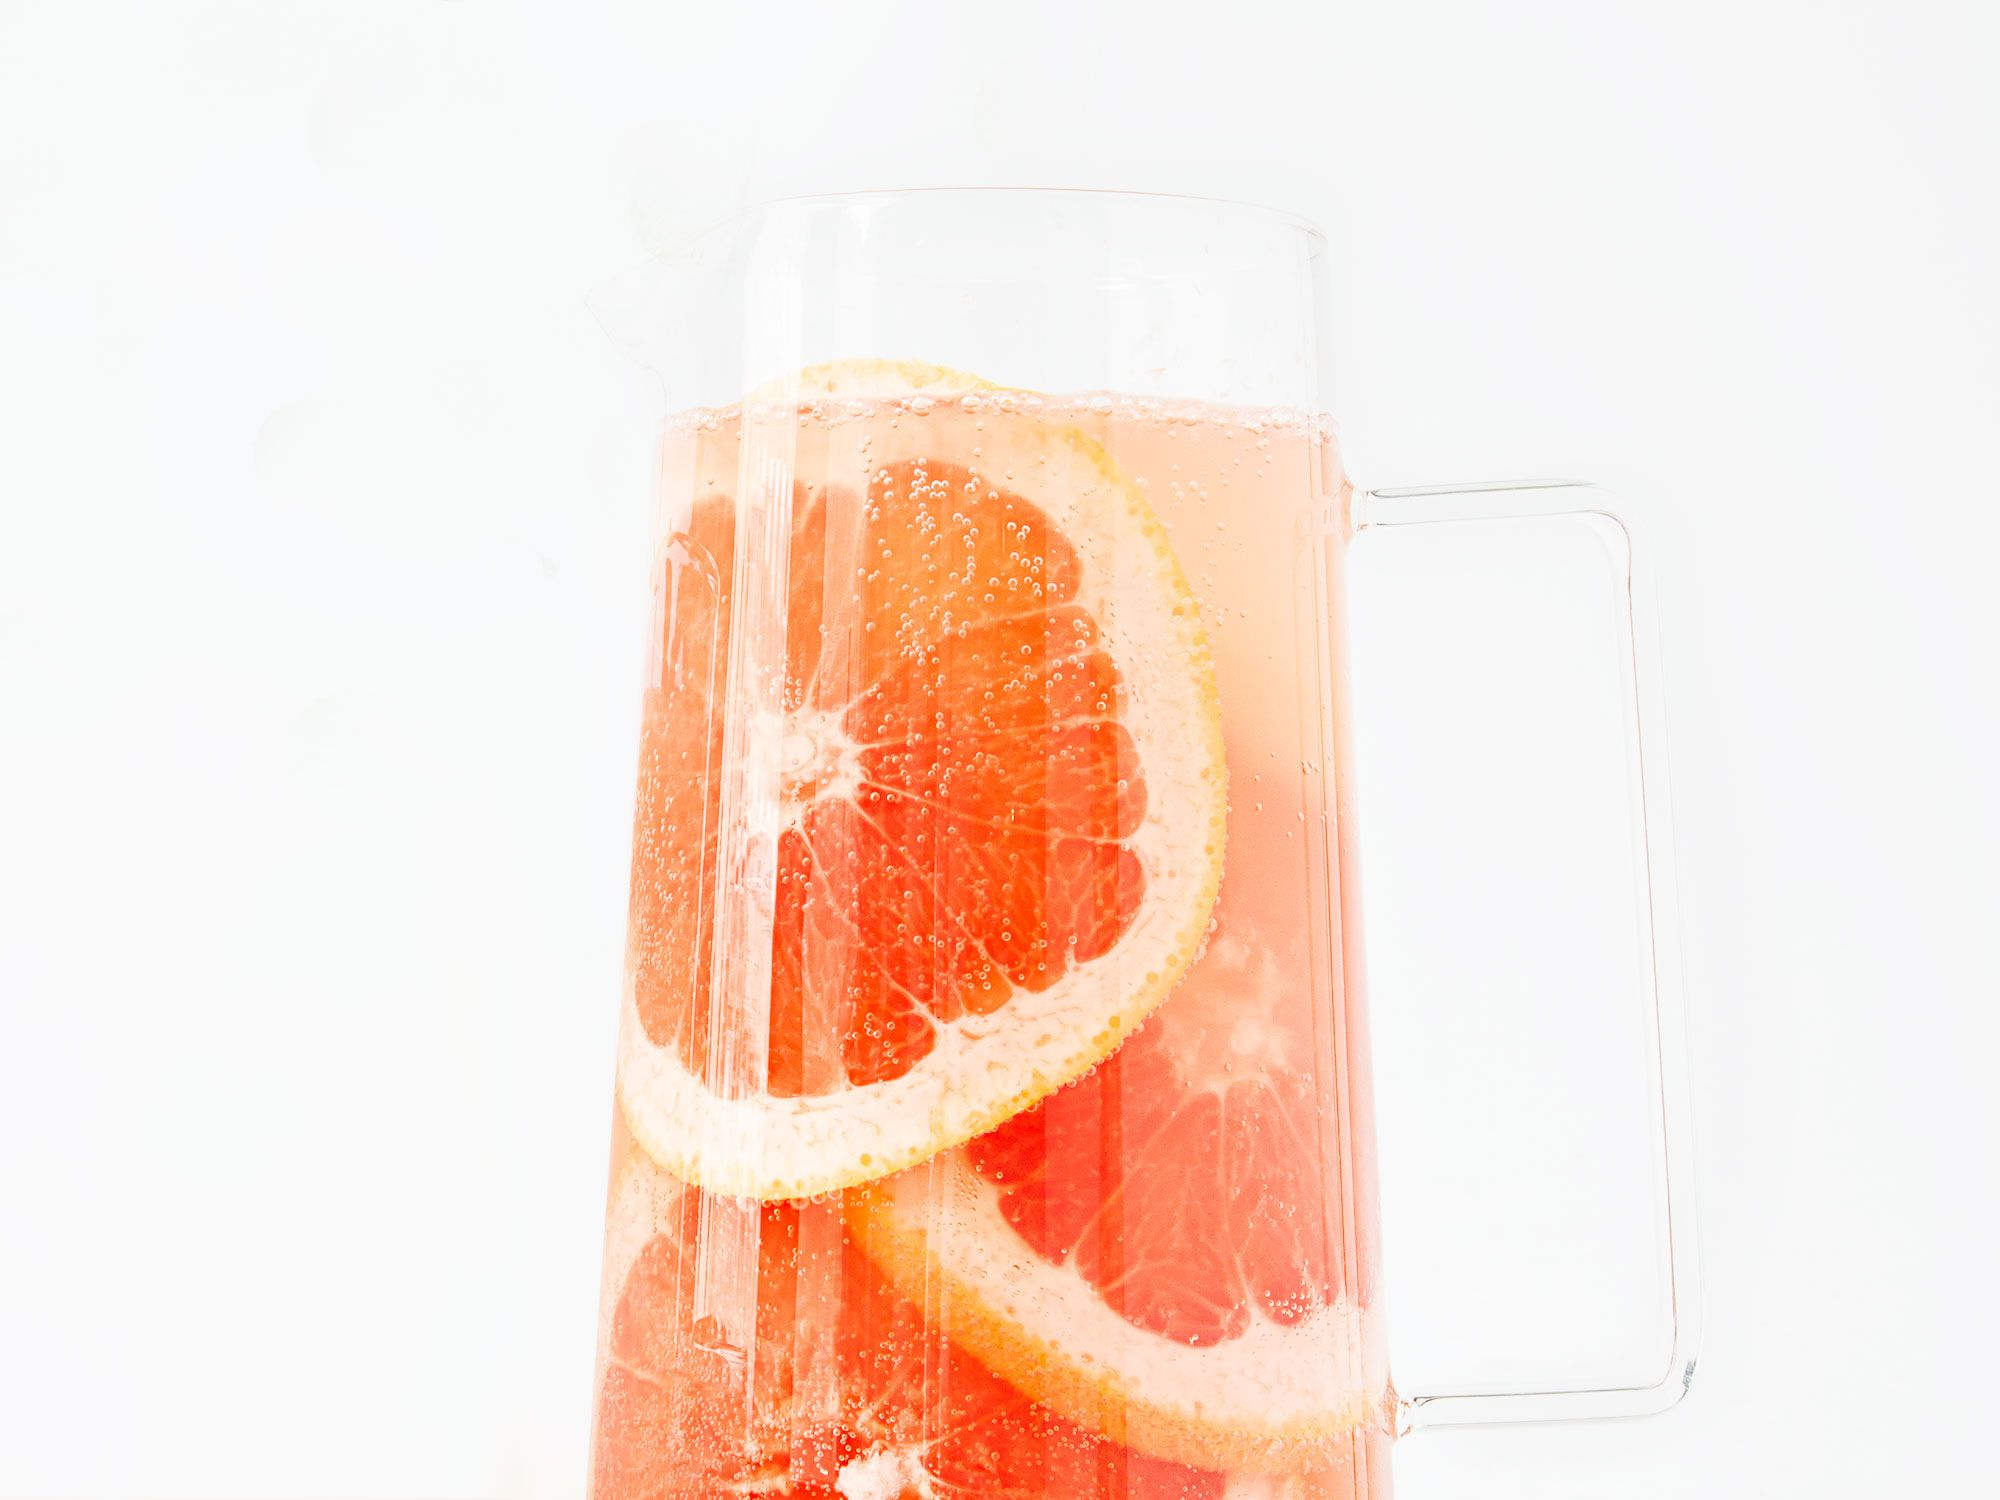 """Lambrusco rosé, Cocchi Americano, fresh grapefruit juice, and club soda come together in this simple spritz. Get the recipe for <a href=""""http://www.saveur.com/punch-house-spritz-cocktail-recipe"""">Punch House Spritz</a>"""